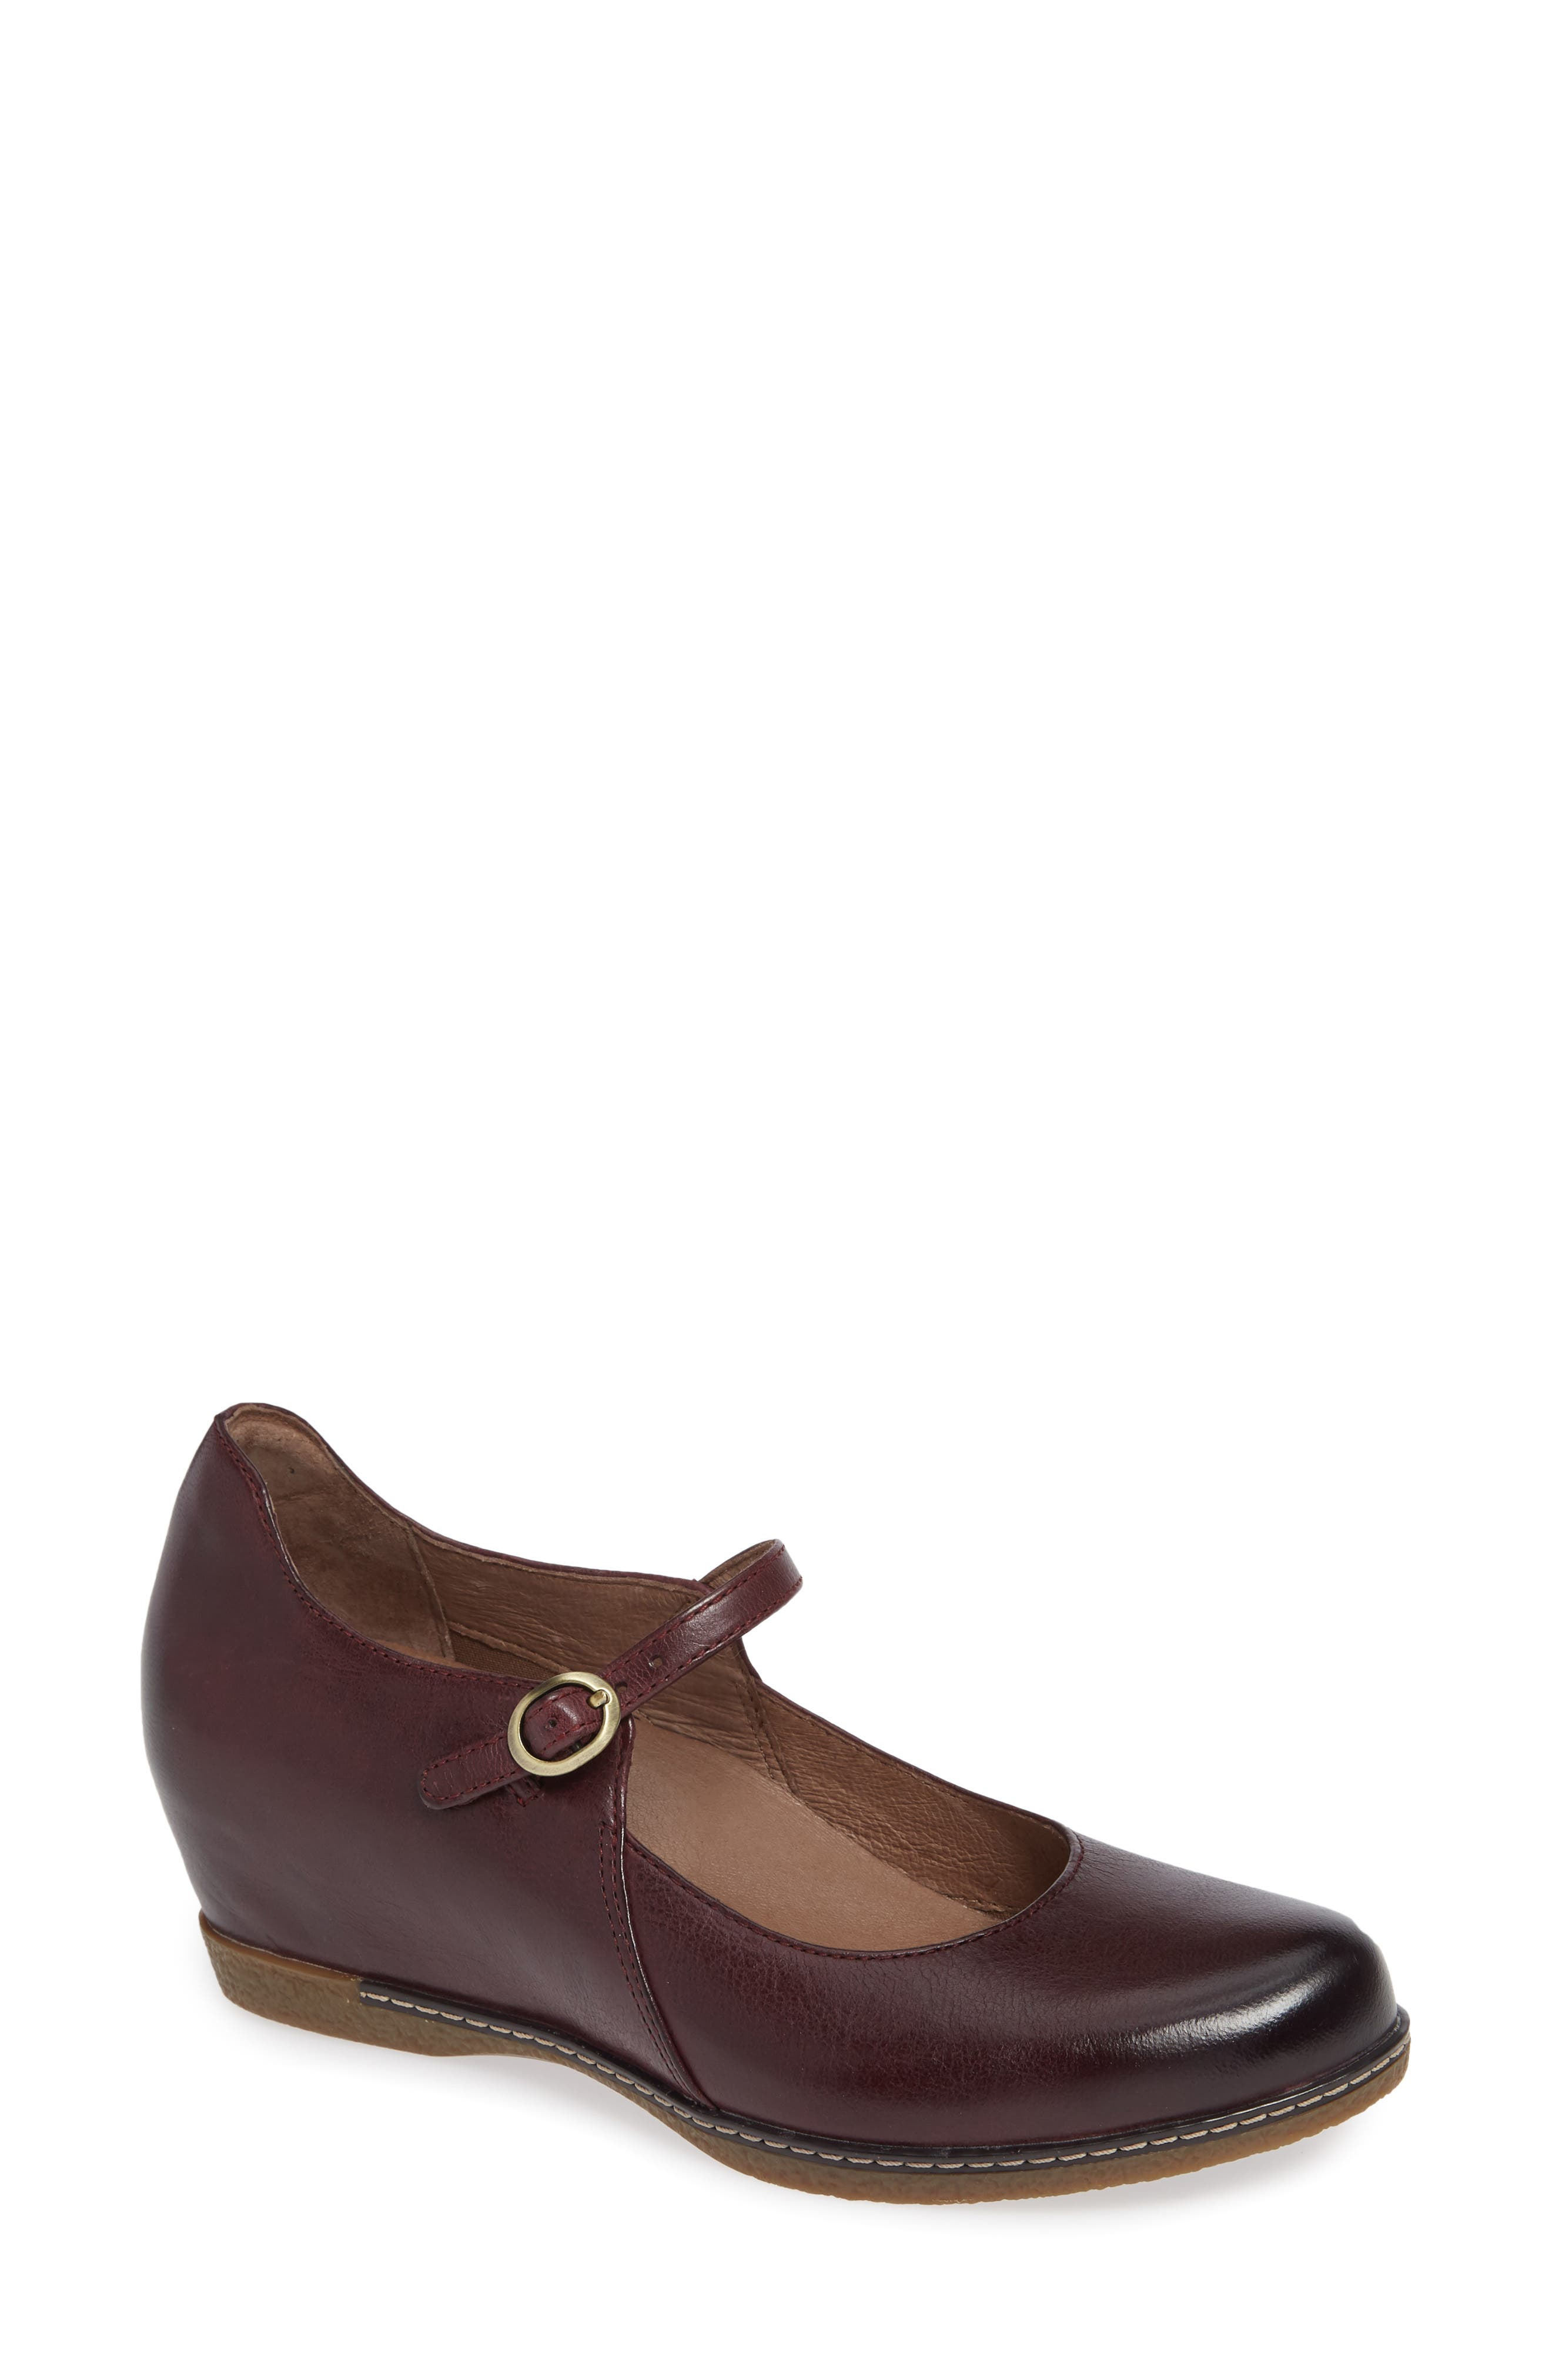 Loralie Mary Jane Wedge,                         Main,                         color, Wine Burnished Leather